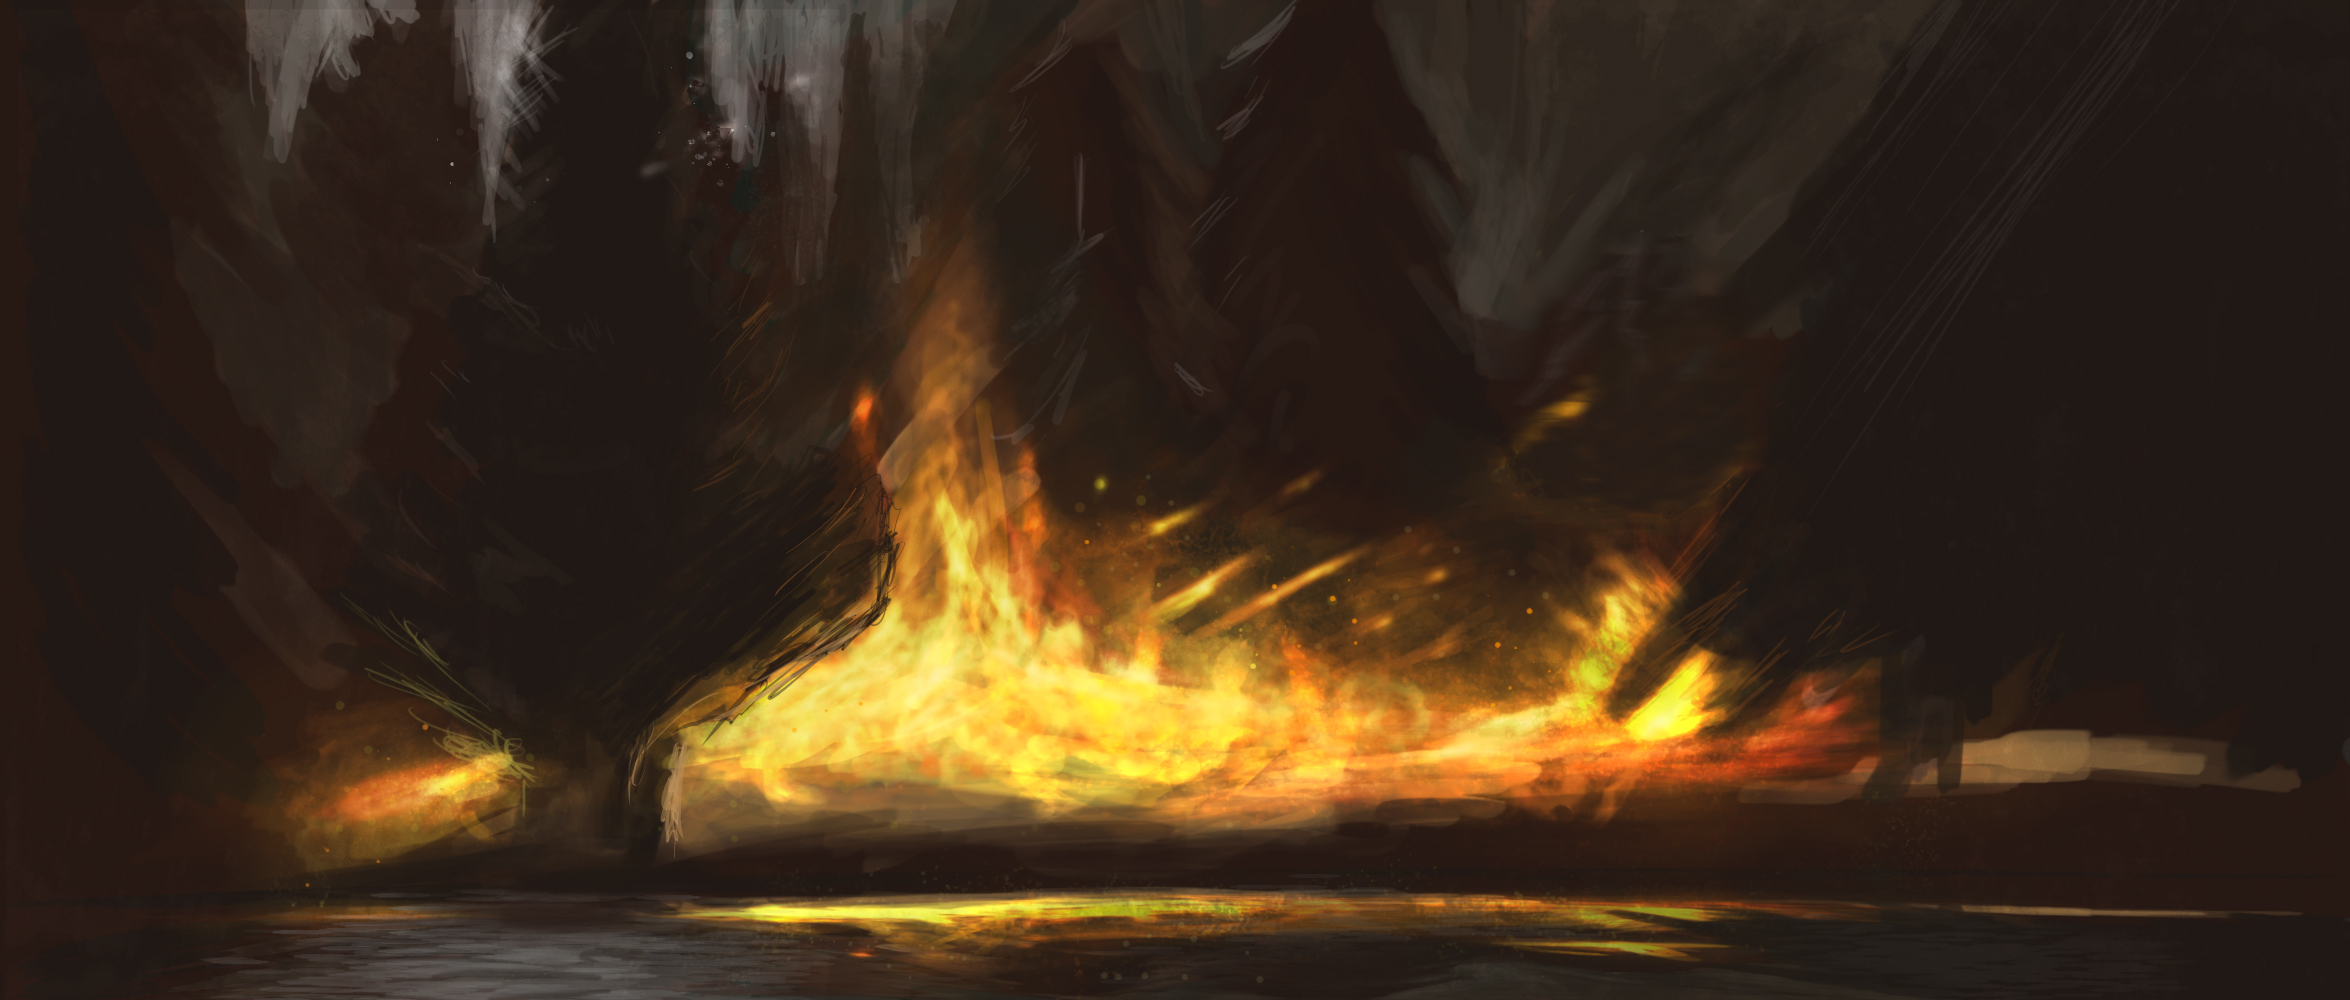 Forest Fire by Ellcryss on DeviantArt